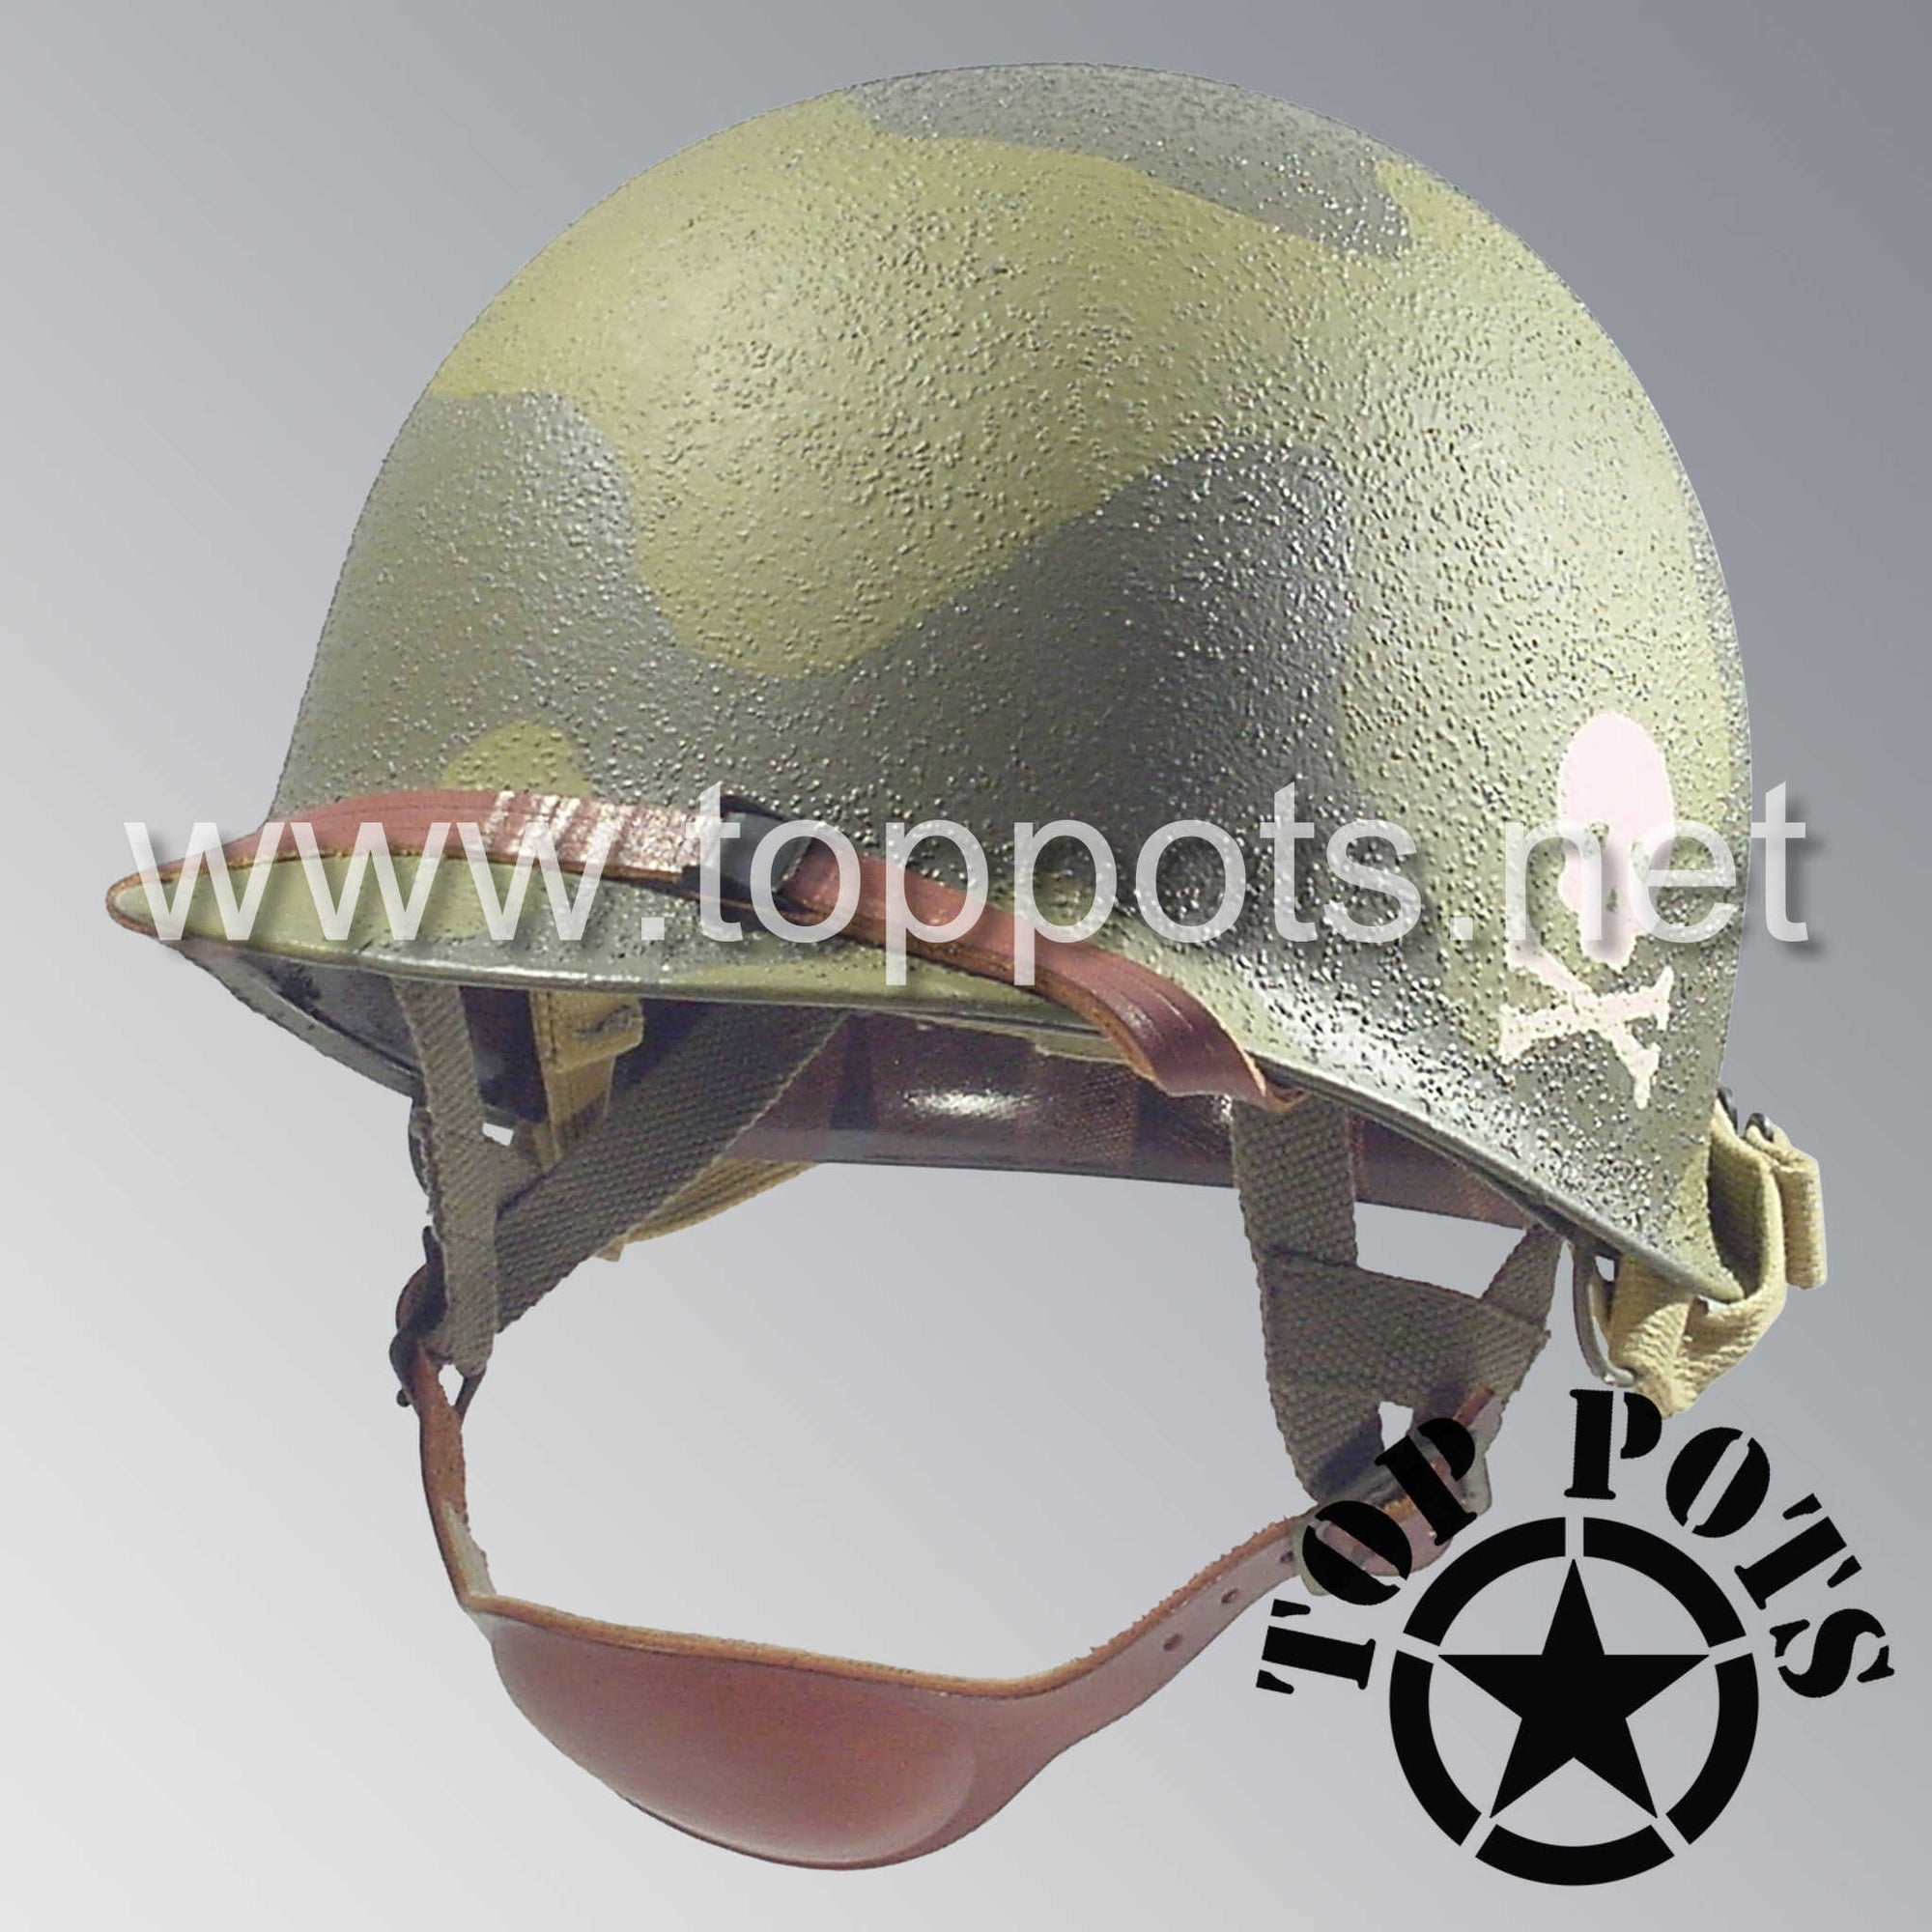 Image 1 of WWII US Army Restored Original M2 Paratrooper Airborne Helmet D Bale Shell and Liner with 504th PIR Officer Pathfinder Camouflage Emblem